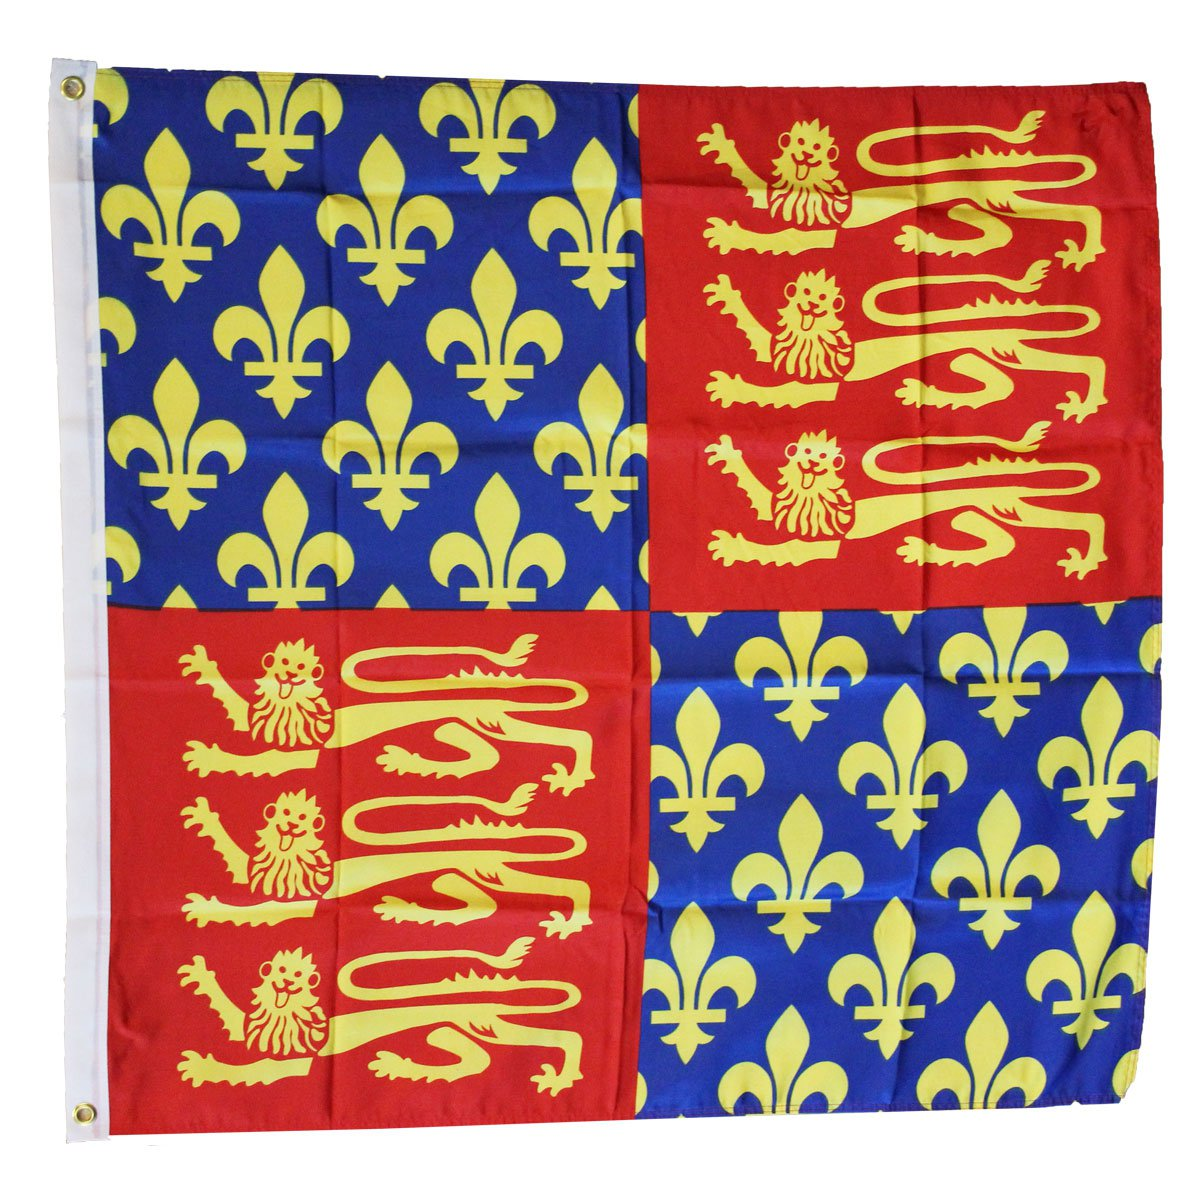 King Edward III - 3'X3' Polyester Flag